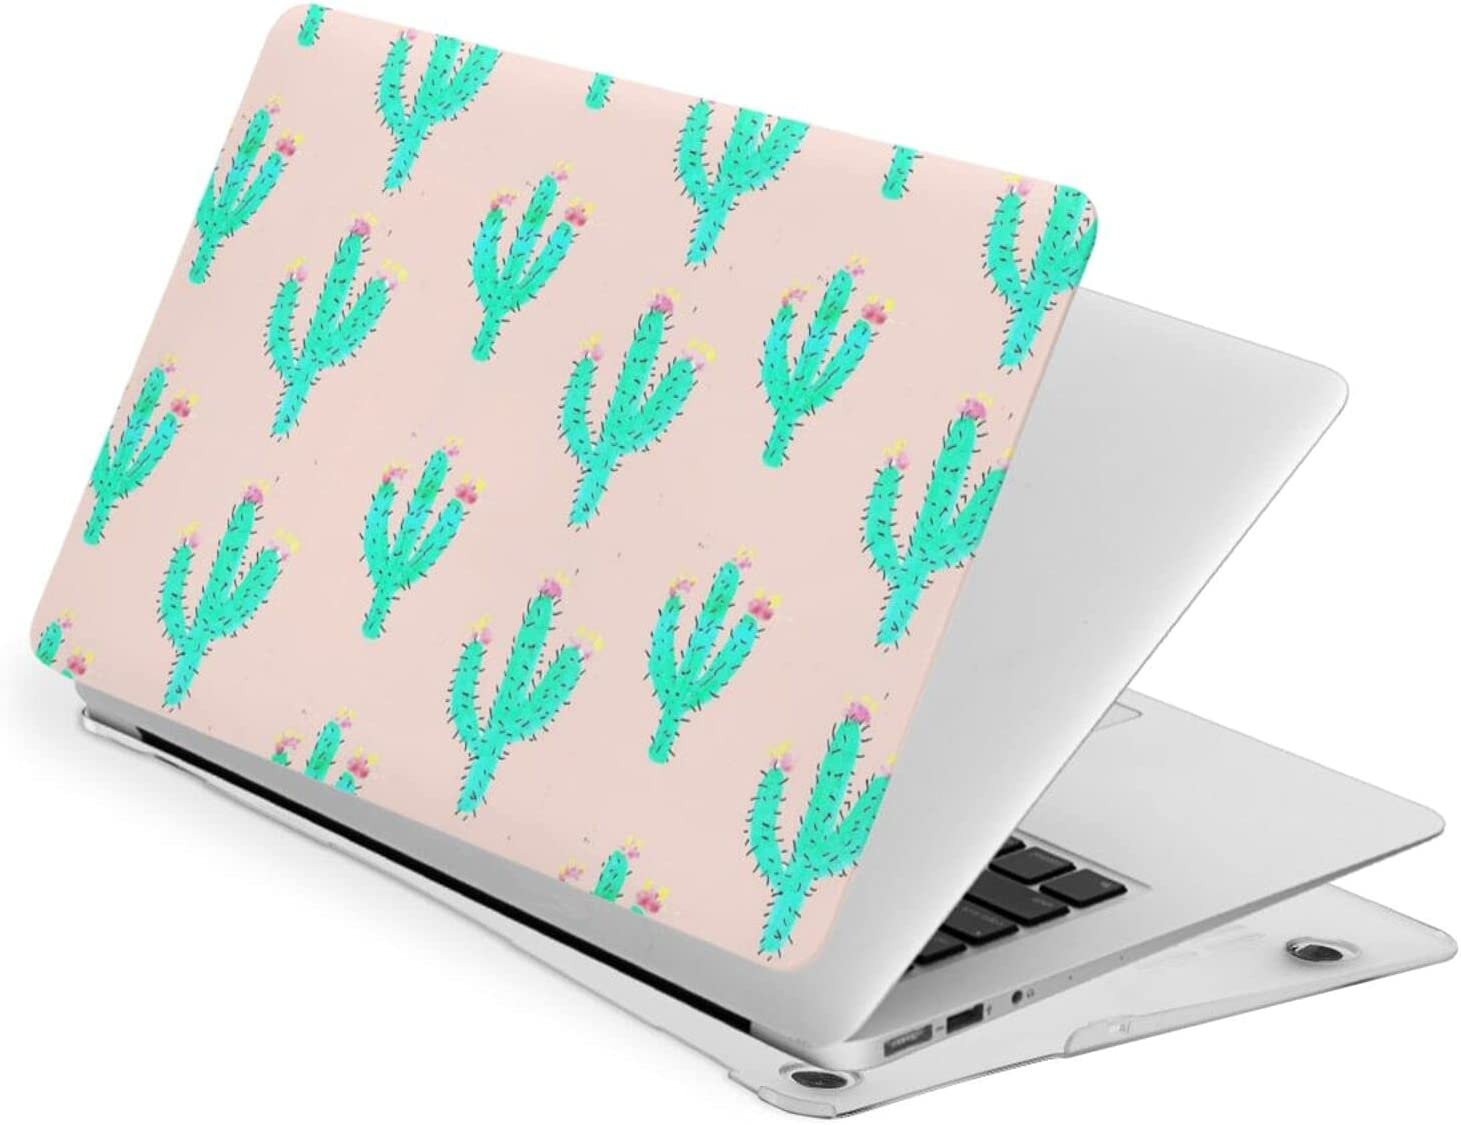 SWEET TANG Bright Mail order cheap Cactus Succulents Compati Pink Hard Special sale item Shell case